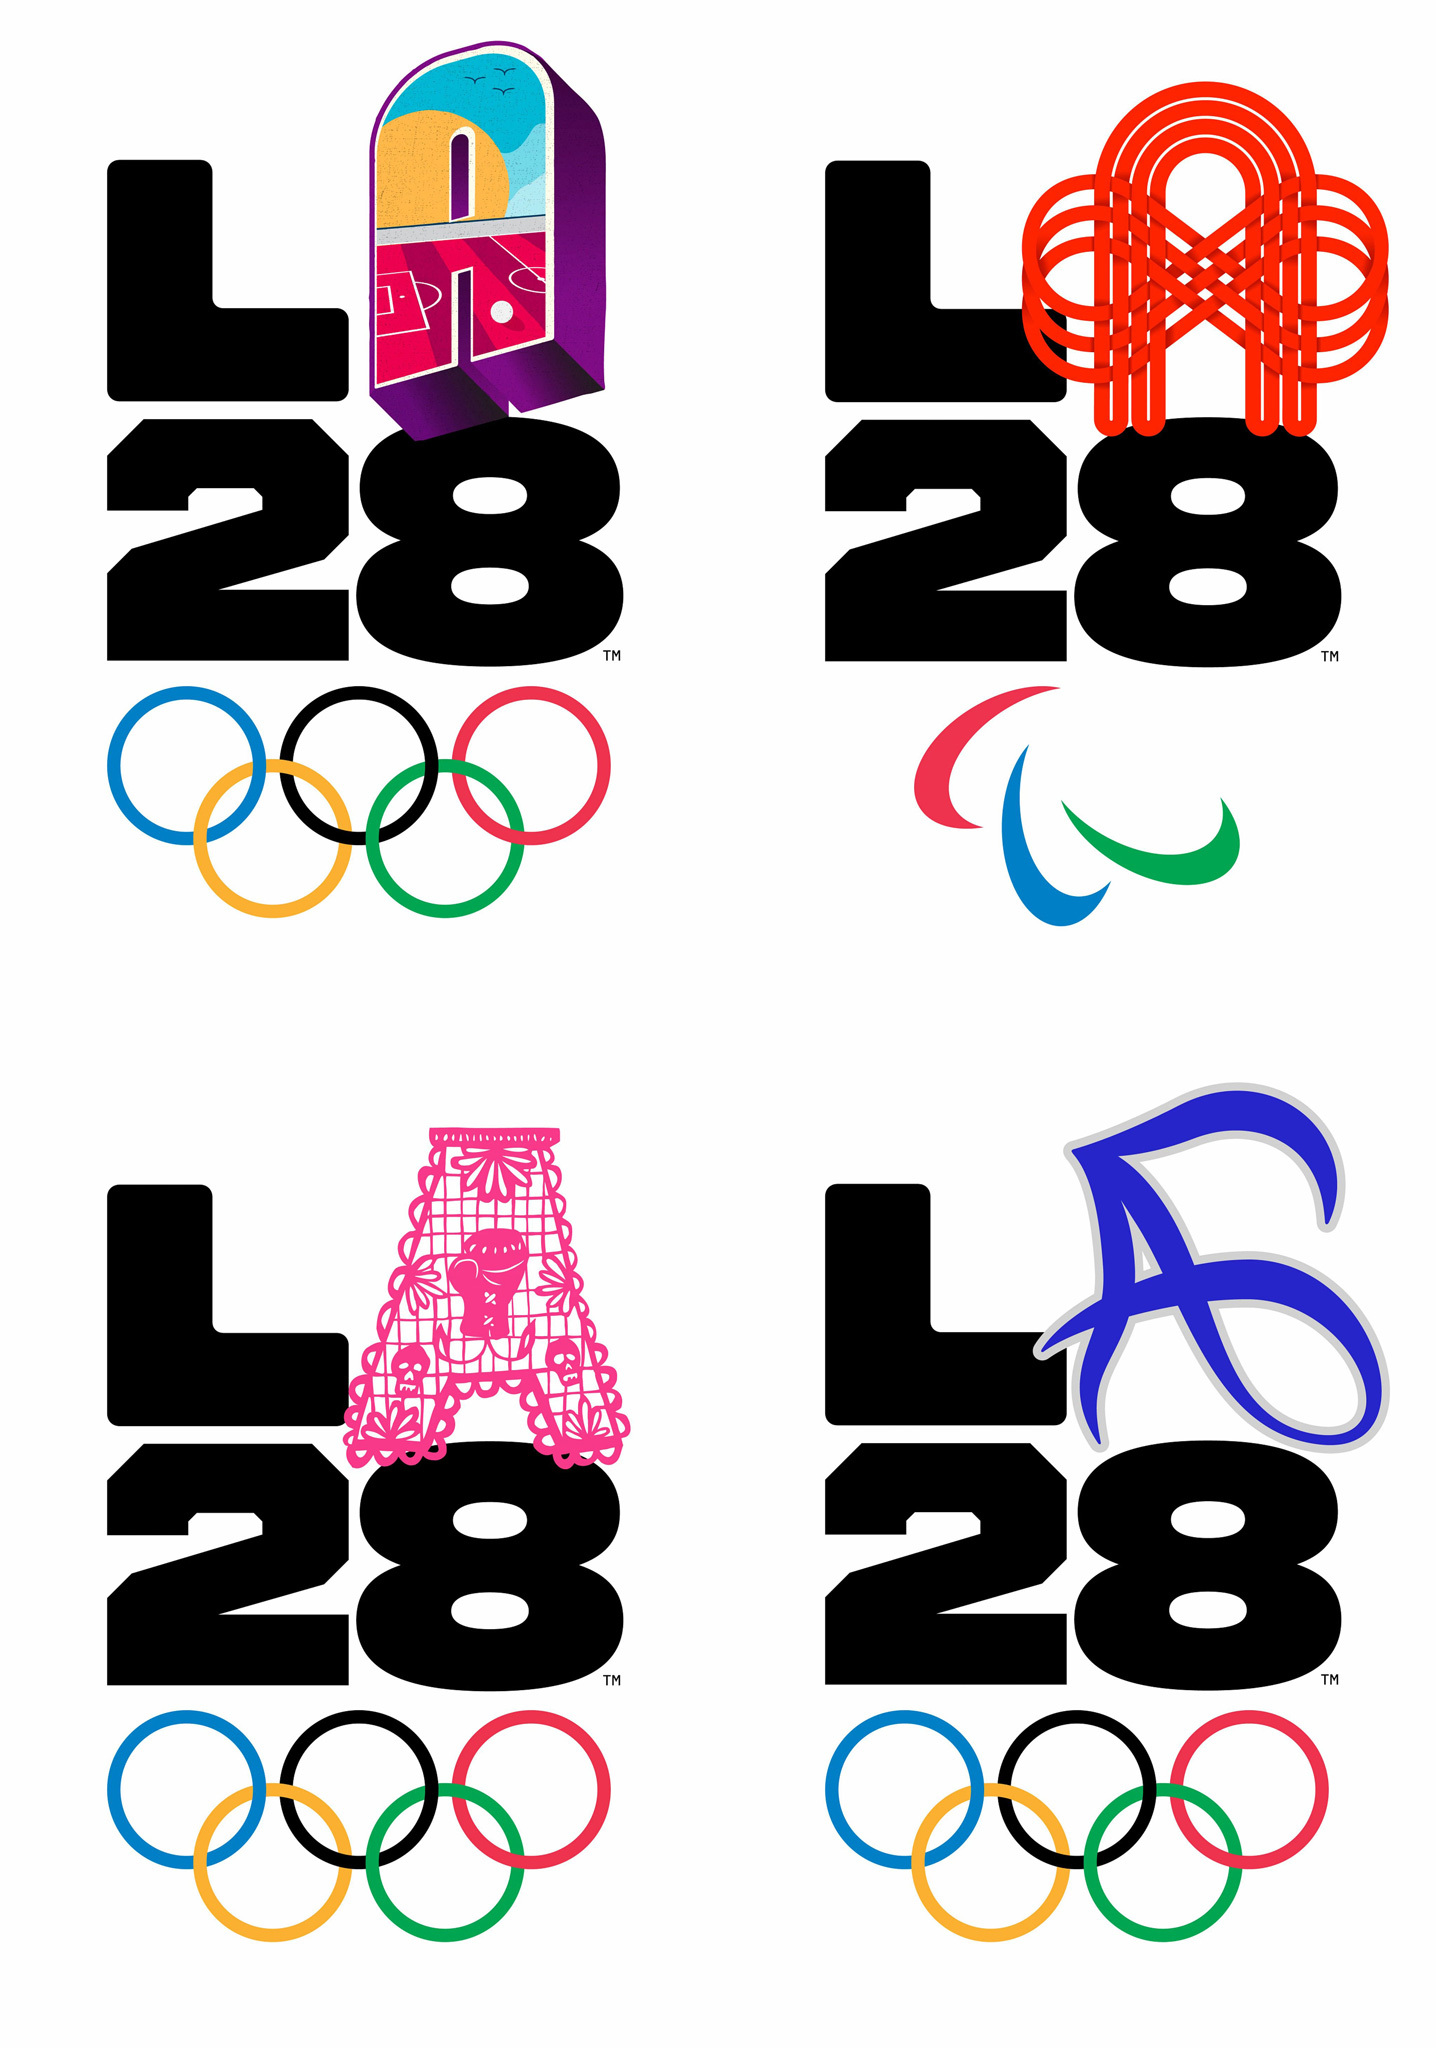 Meet L.A.'s 35 different logos for the 2028 Olympic and Paralympic Games